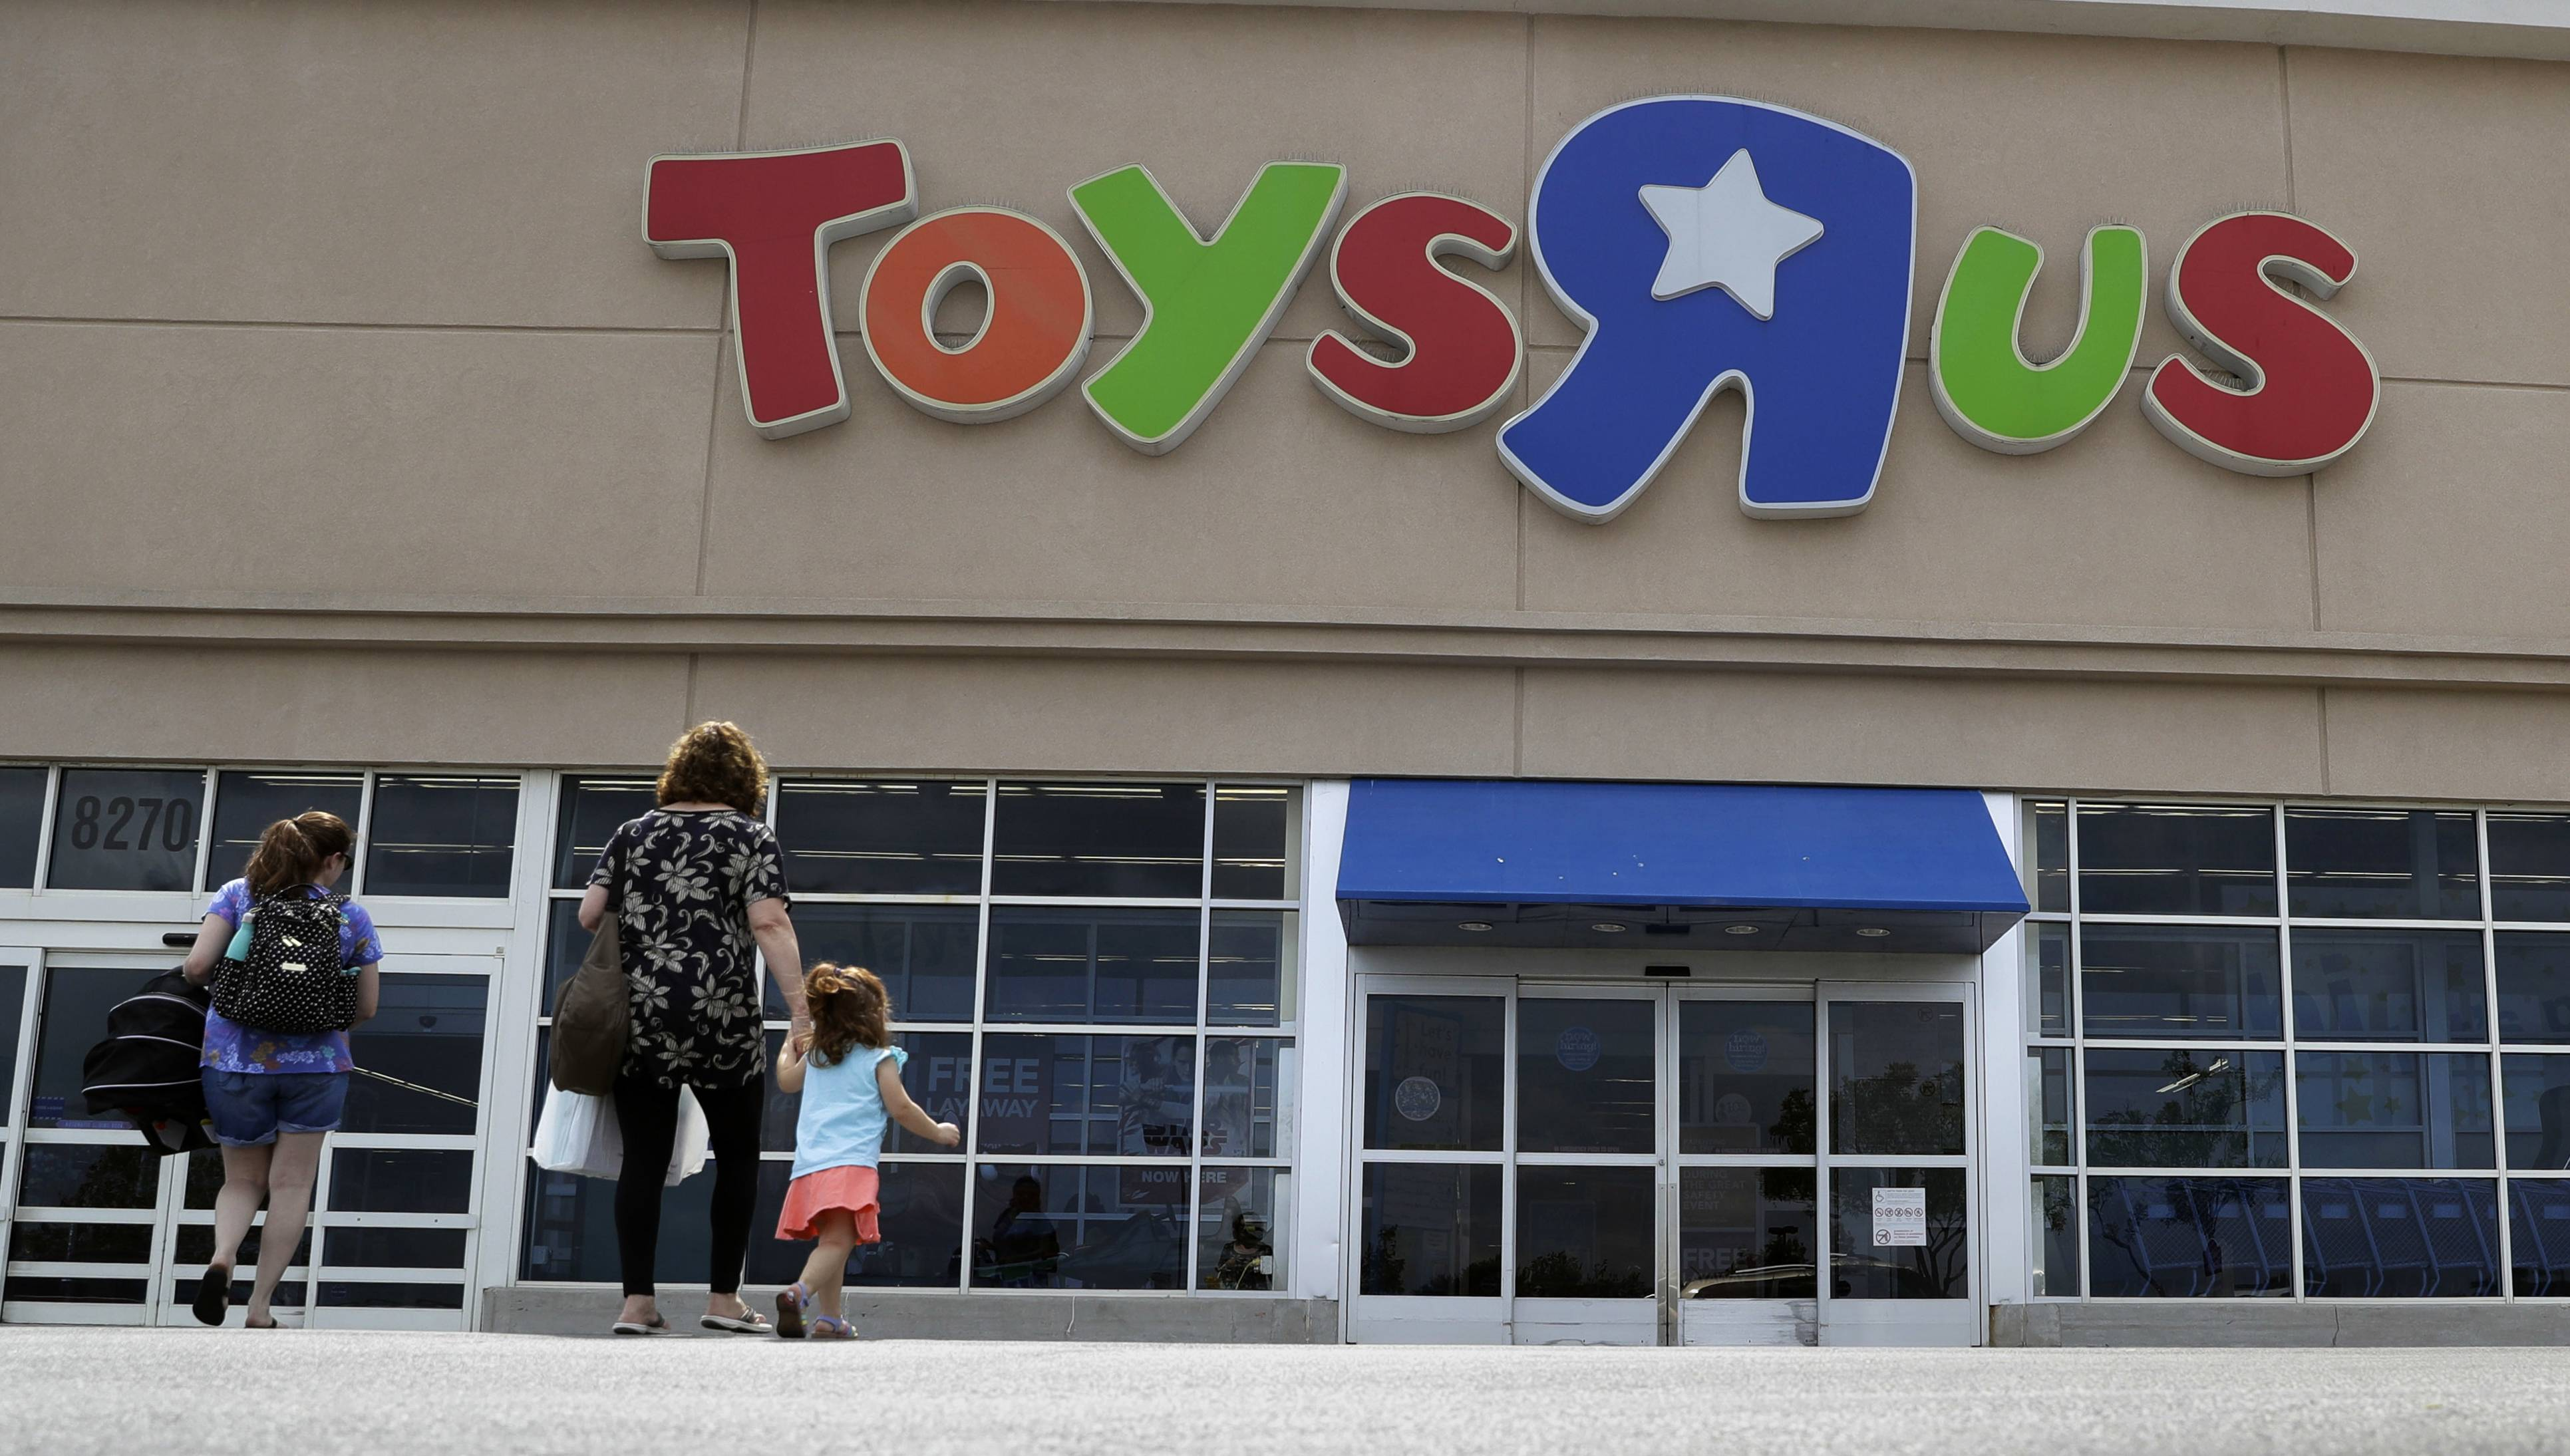 Toys R Us Inc . plans to close another 200 stores and lay off a significant portion of its corporate staff following a disappointing holiday sales season, according to The Wall Street Journal.